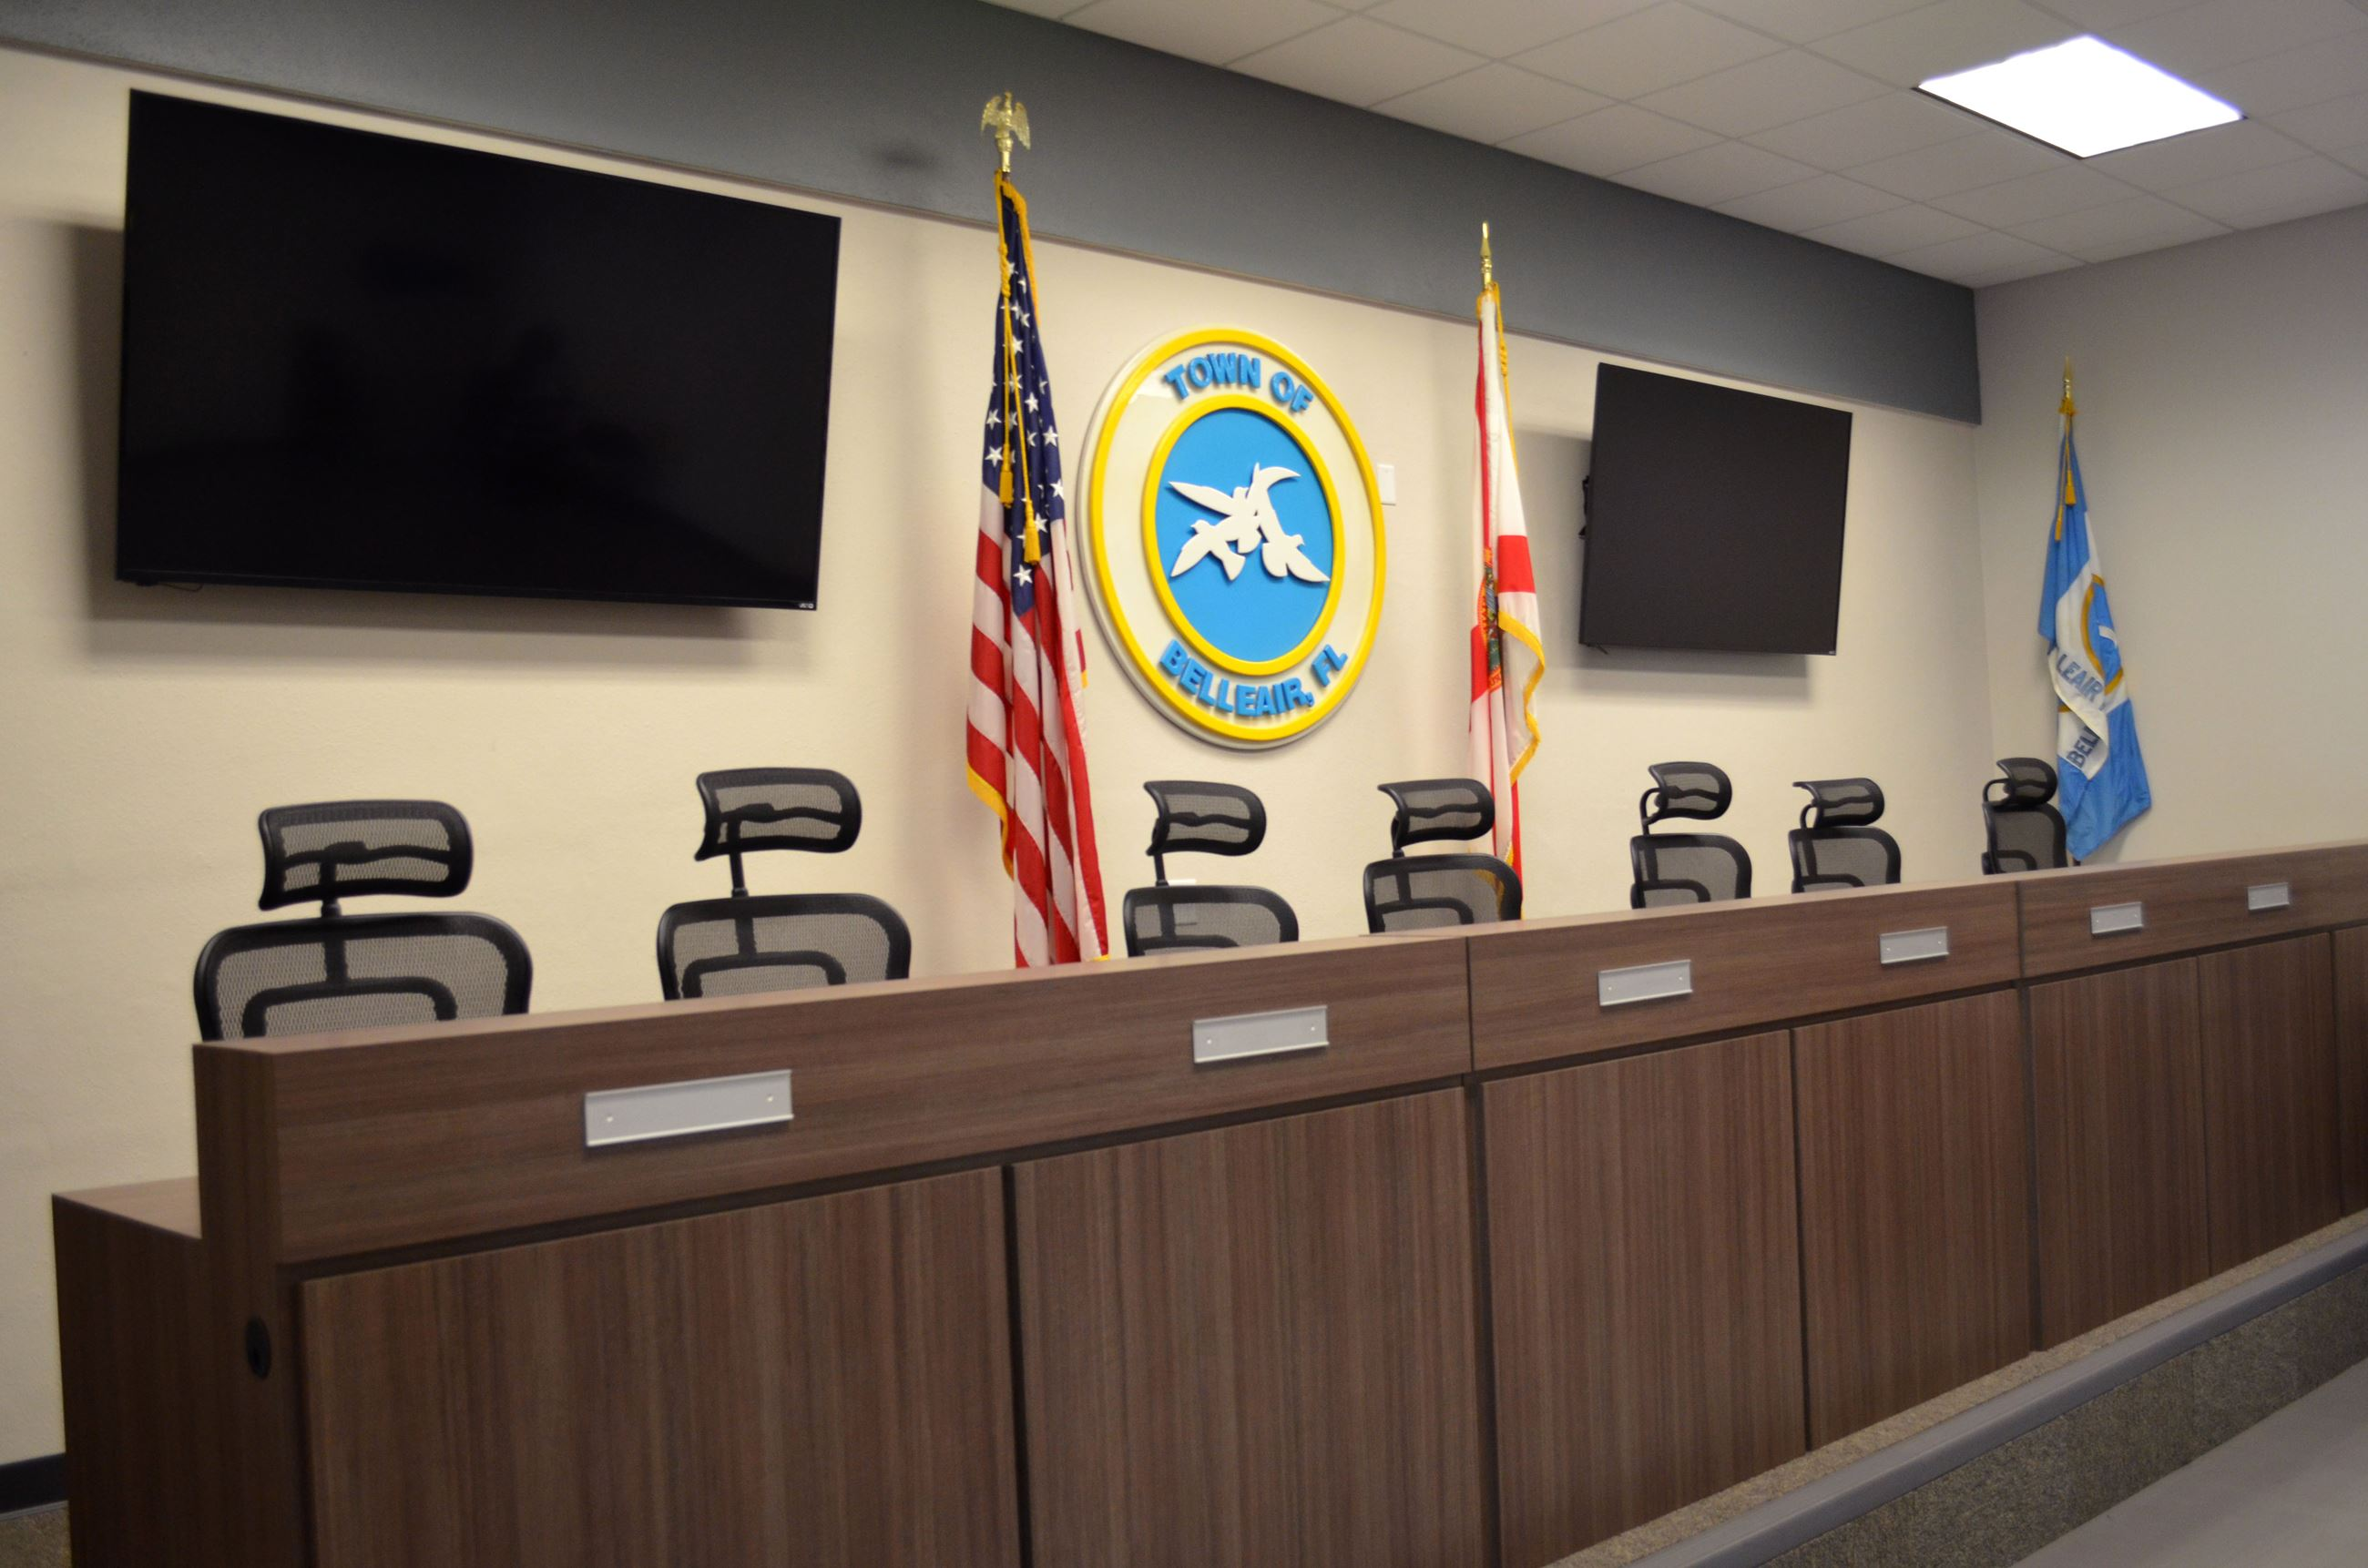 Belleair's Commission chambers include chairs on a raised dais underneath a Town of Belleair seal